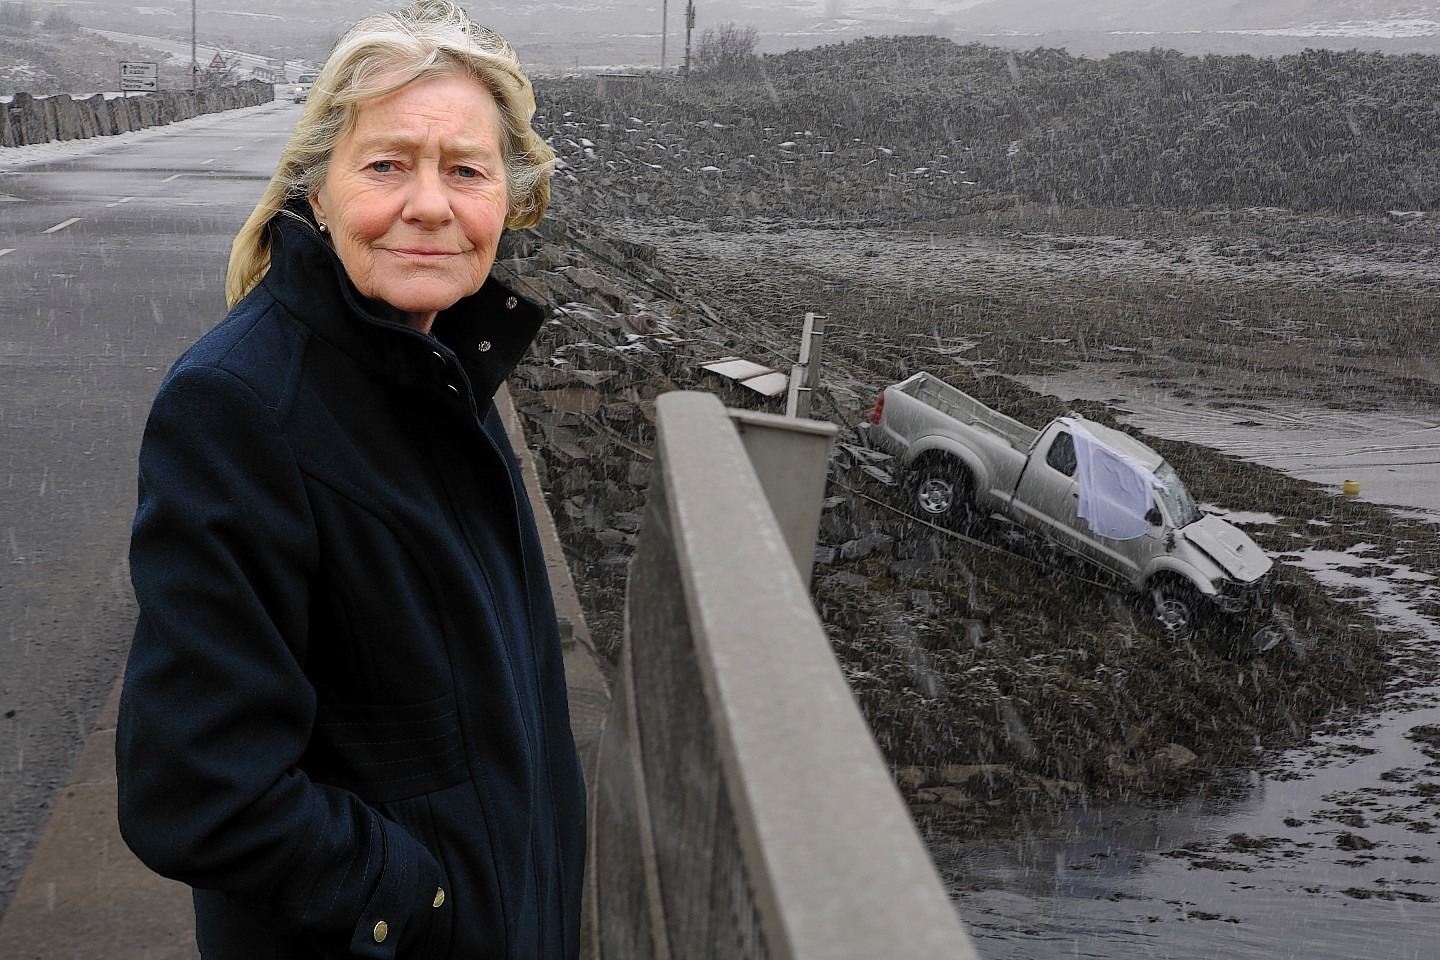 David Bowes' partner Anne Scott is horrified at the prospect of the council appealing the case